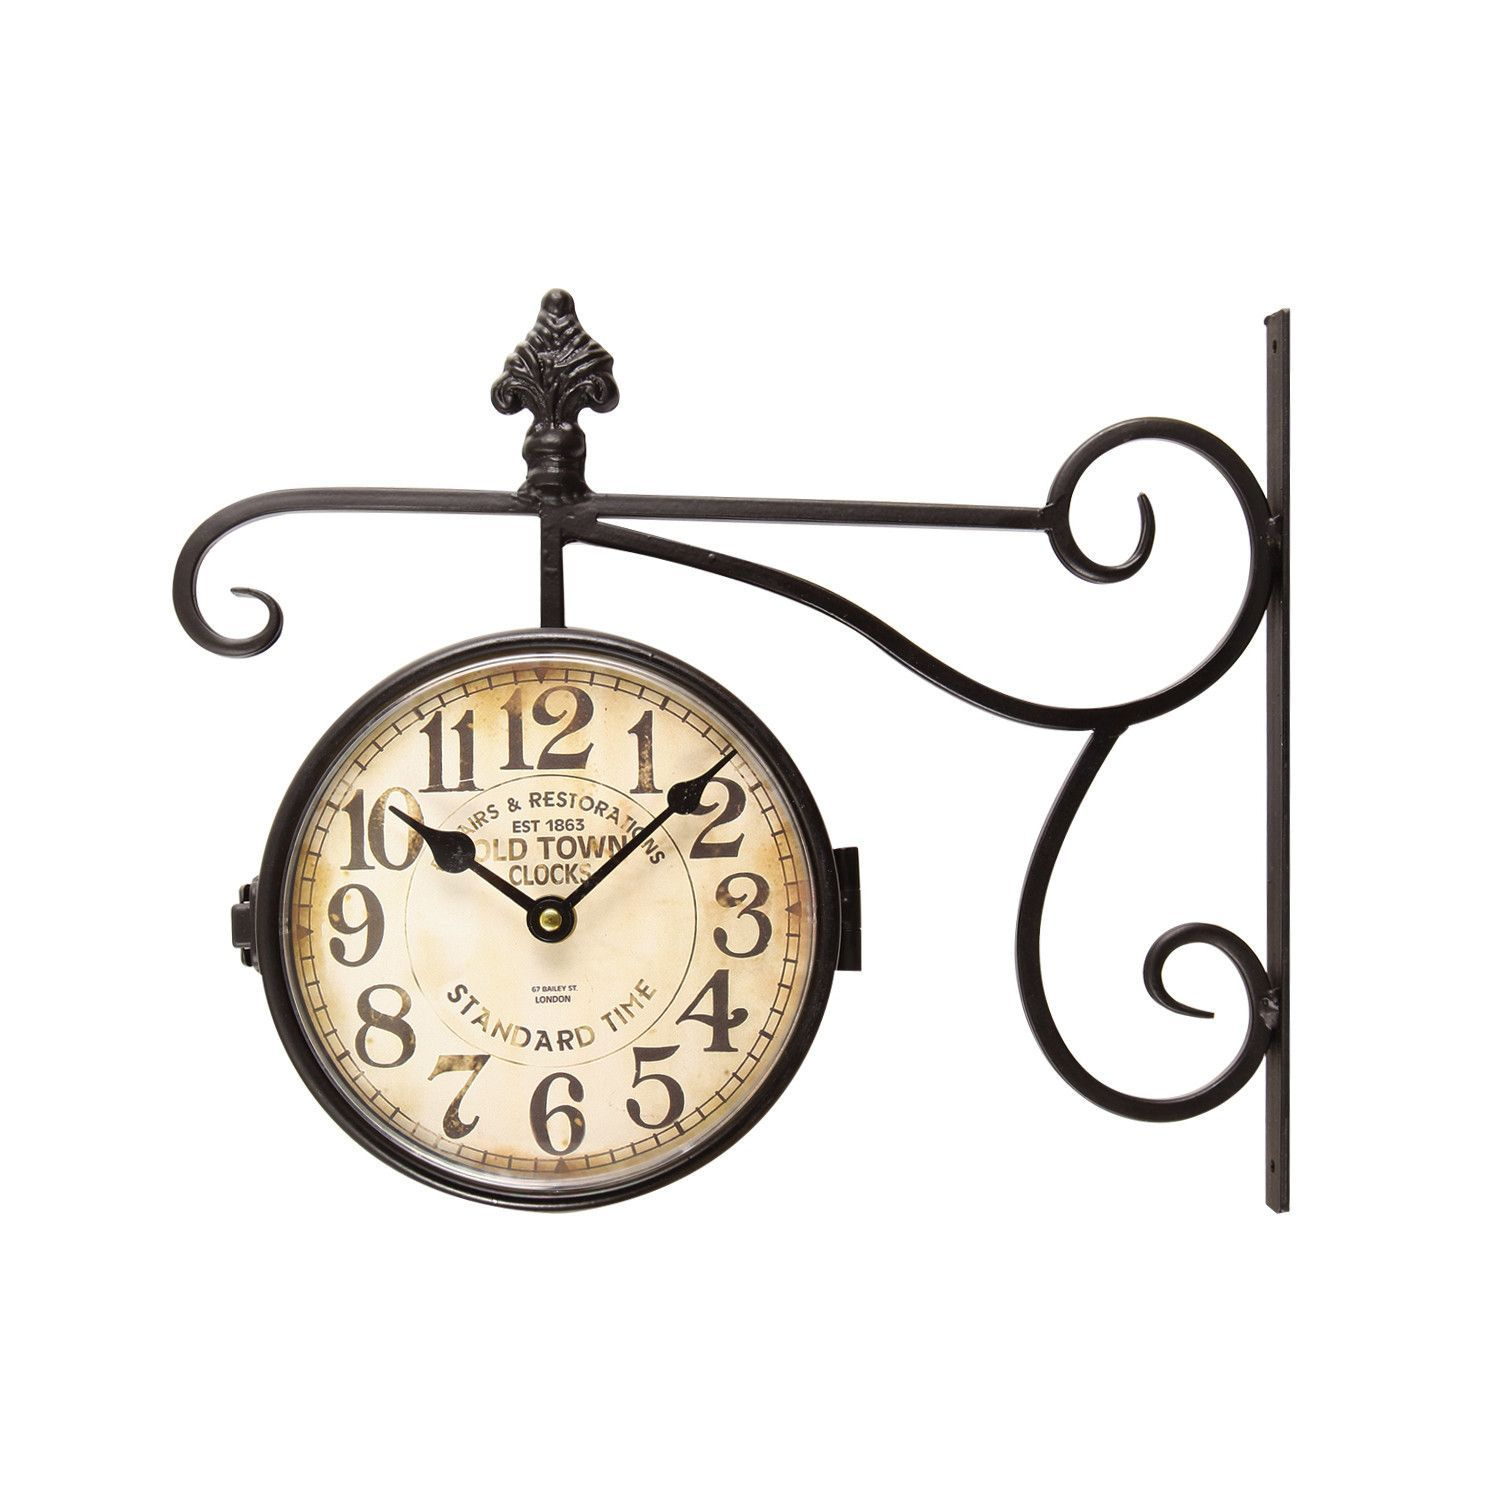 furnistars black iron vintage inspired double sided wall clock adeco black wrought iron vintage inspired train